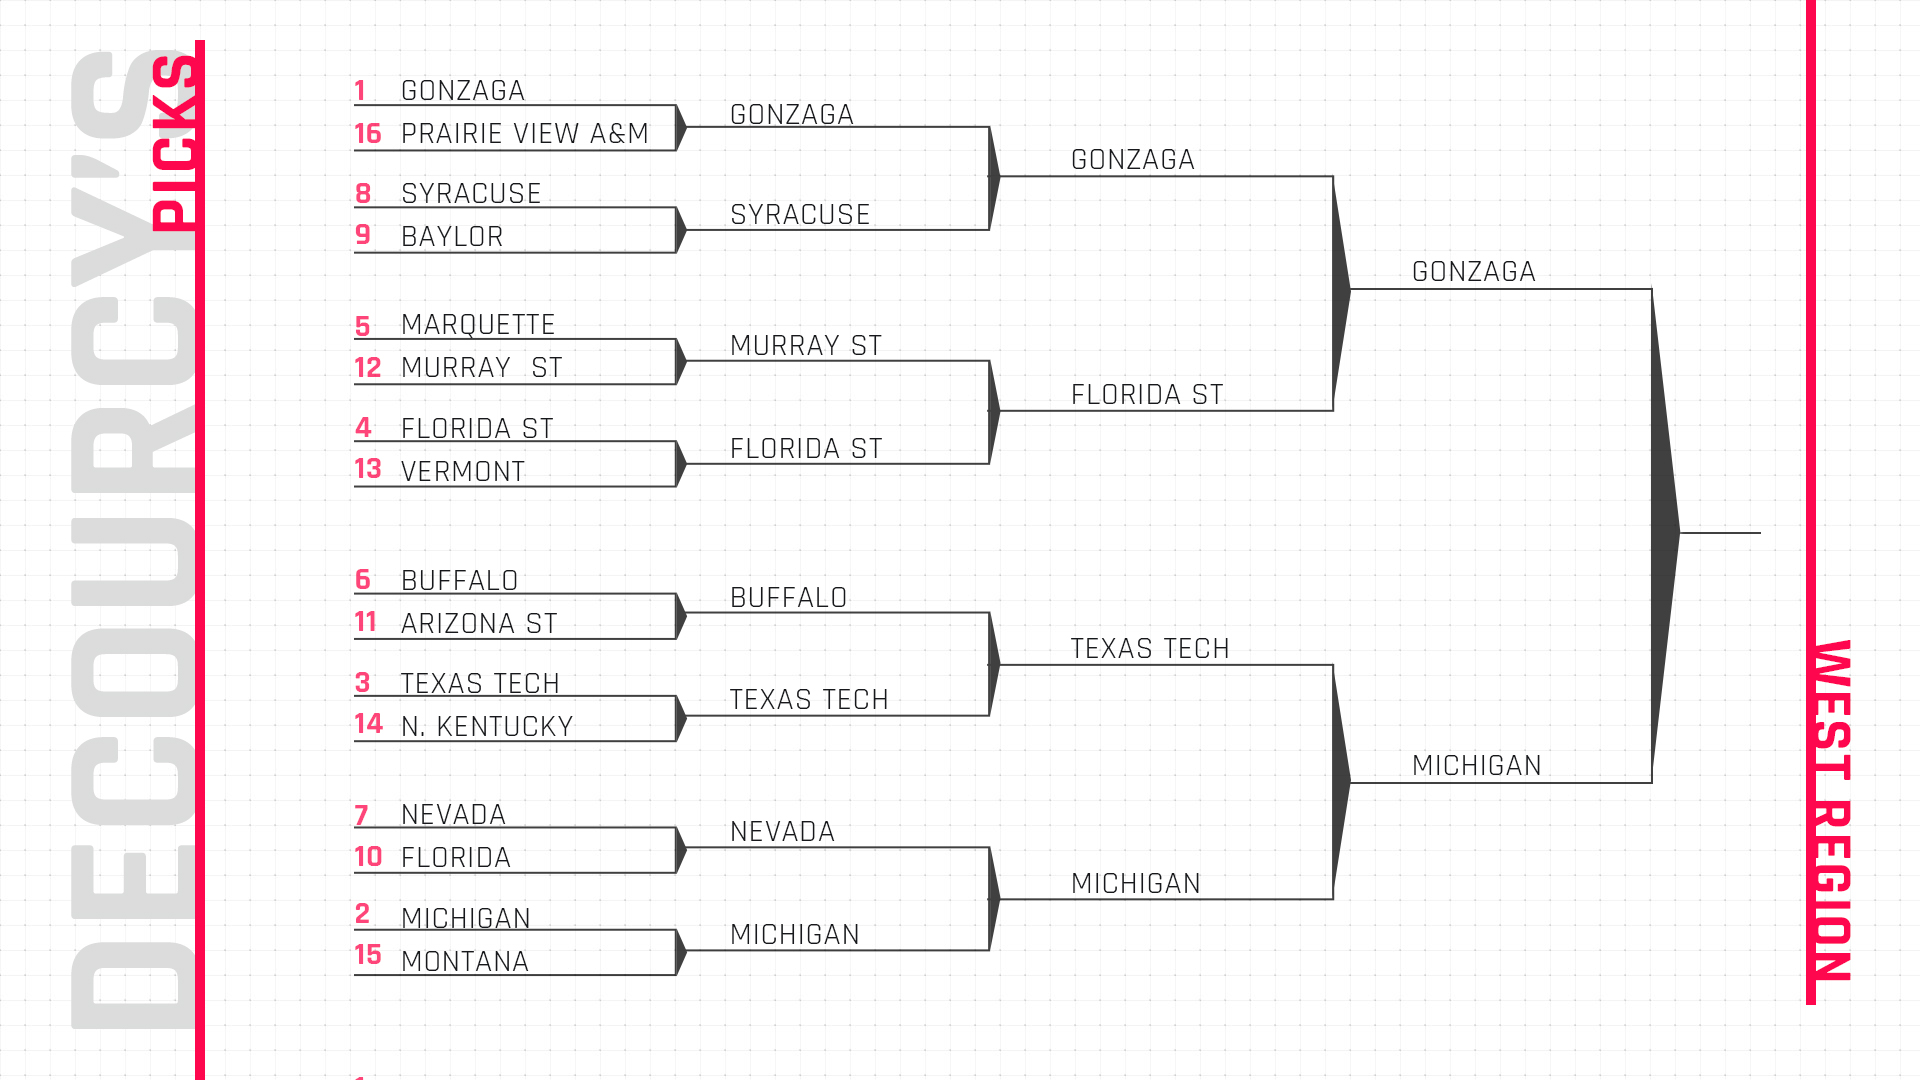 2019 Ncaa Tournament Bracket Schedule Teams For March: March Madness Bracket 2019: Mike DeCourcy's Expert NCAA